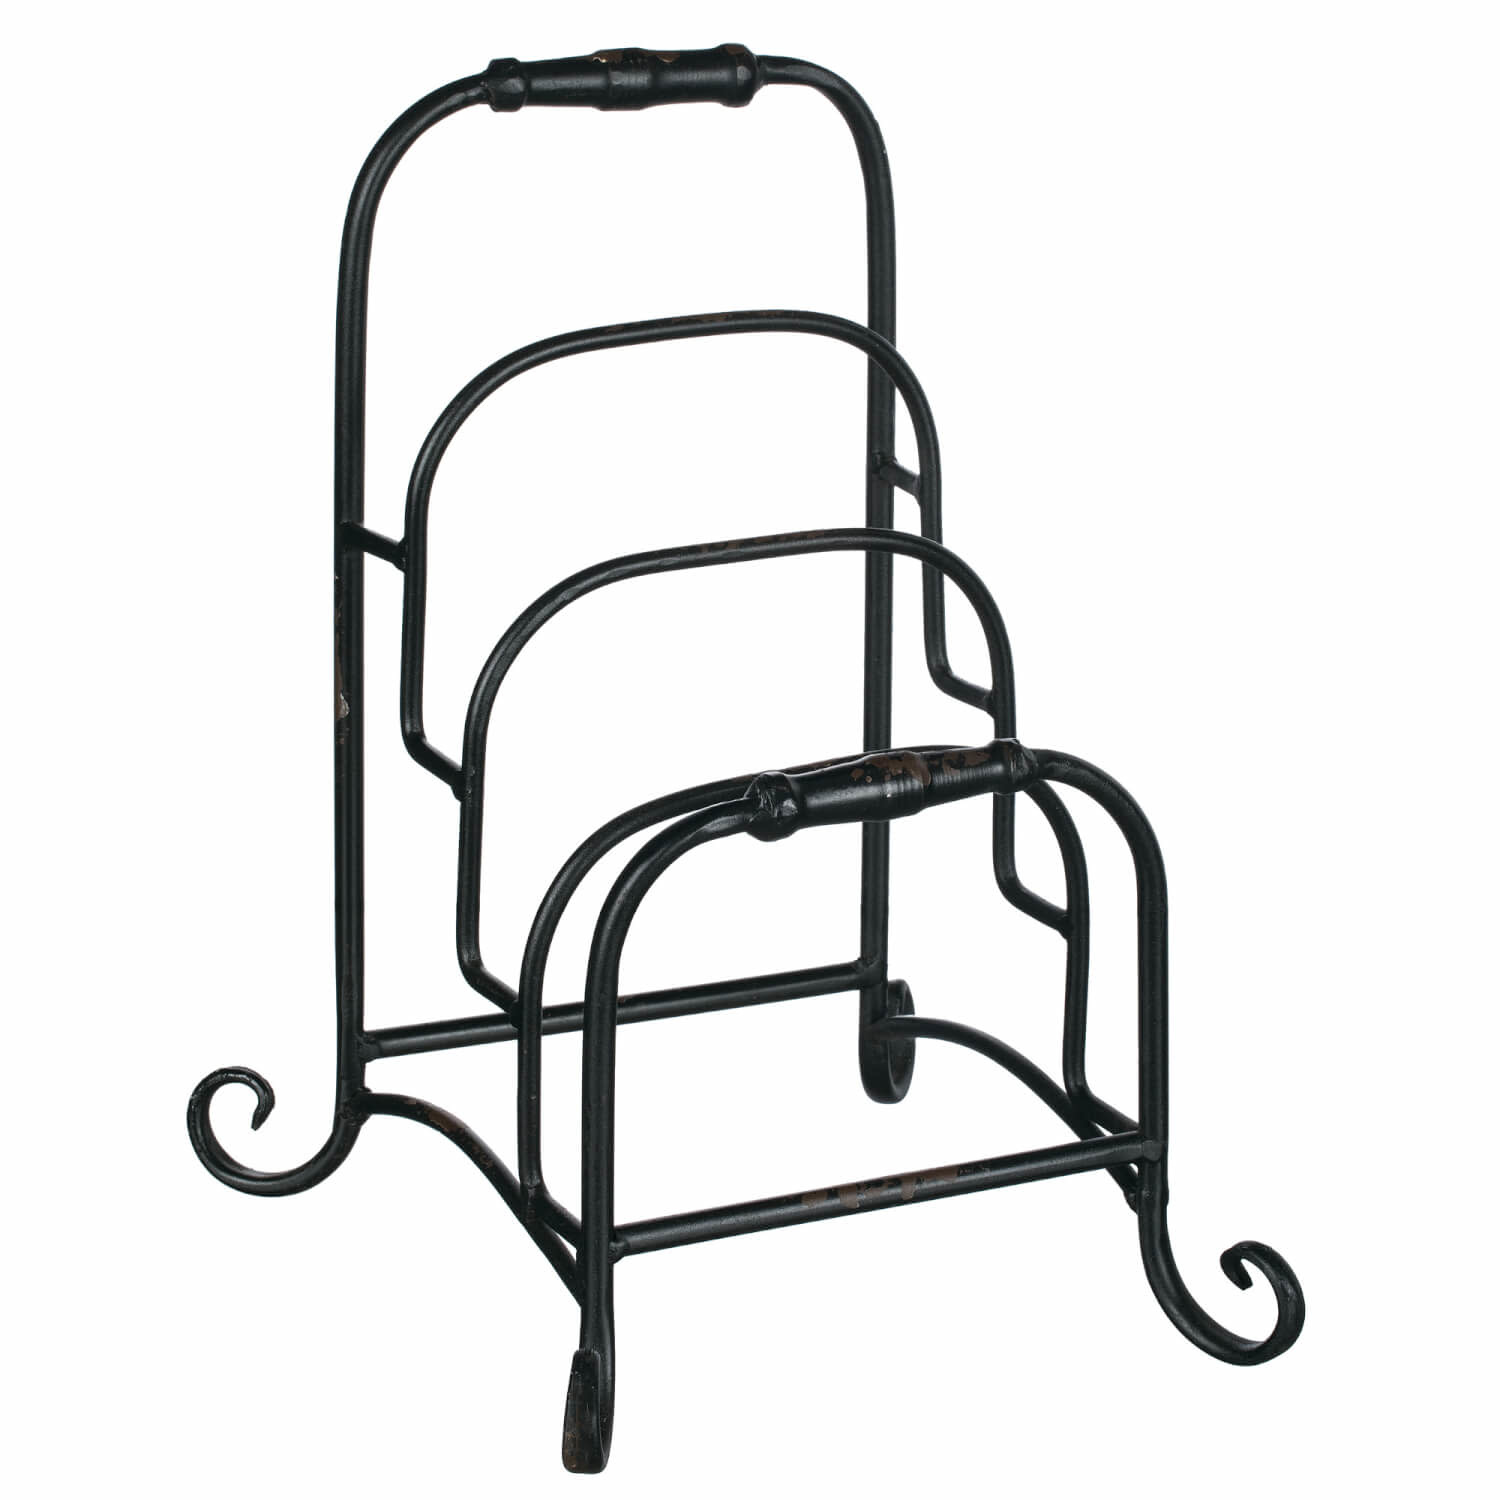 4 Plate Metal Plate Stand